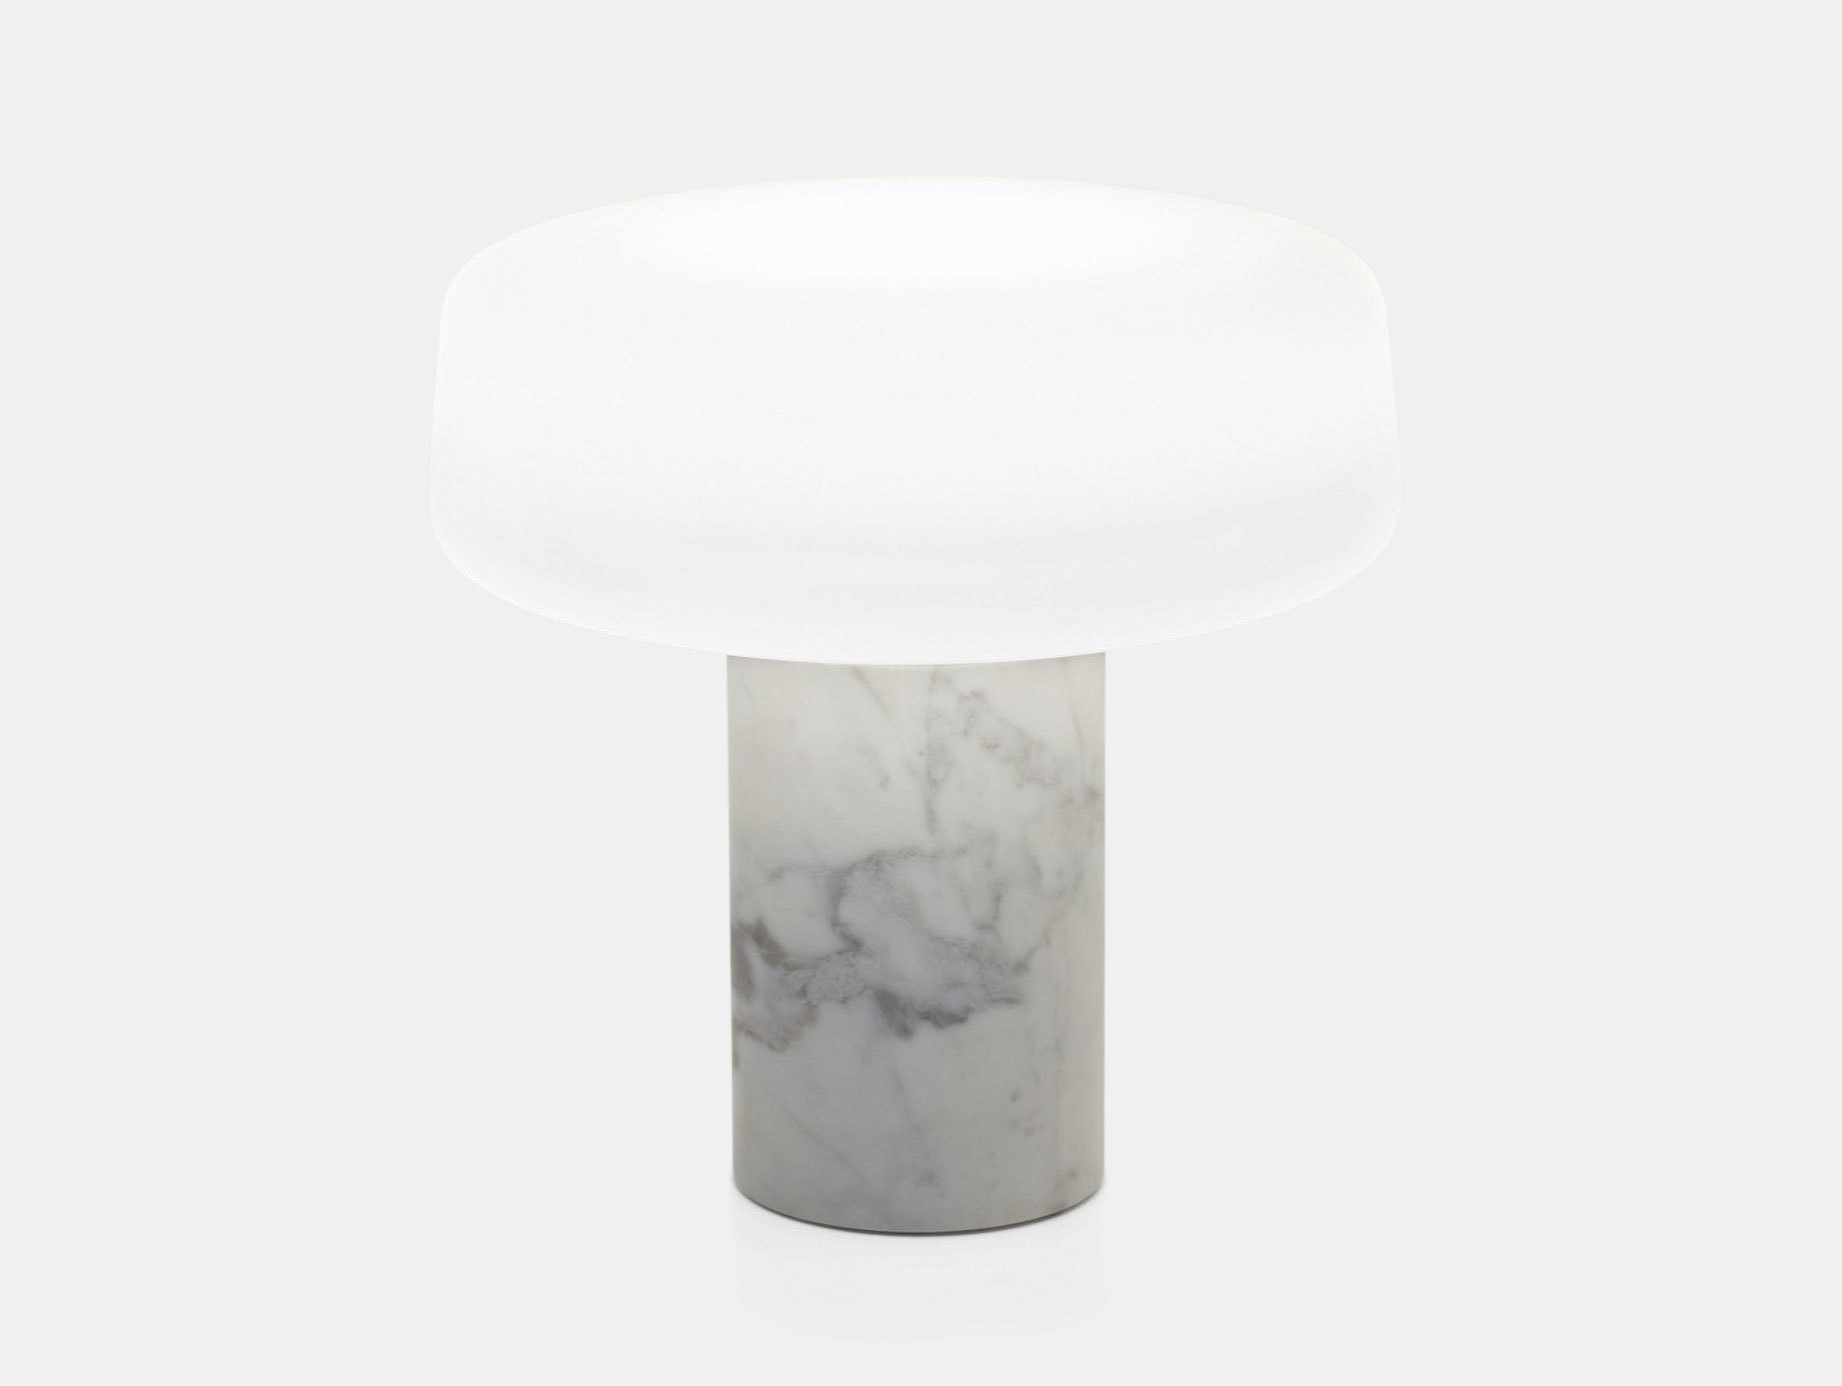 Terence Woodgate Solid Table Light large White Carrara Marble